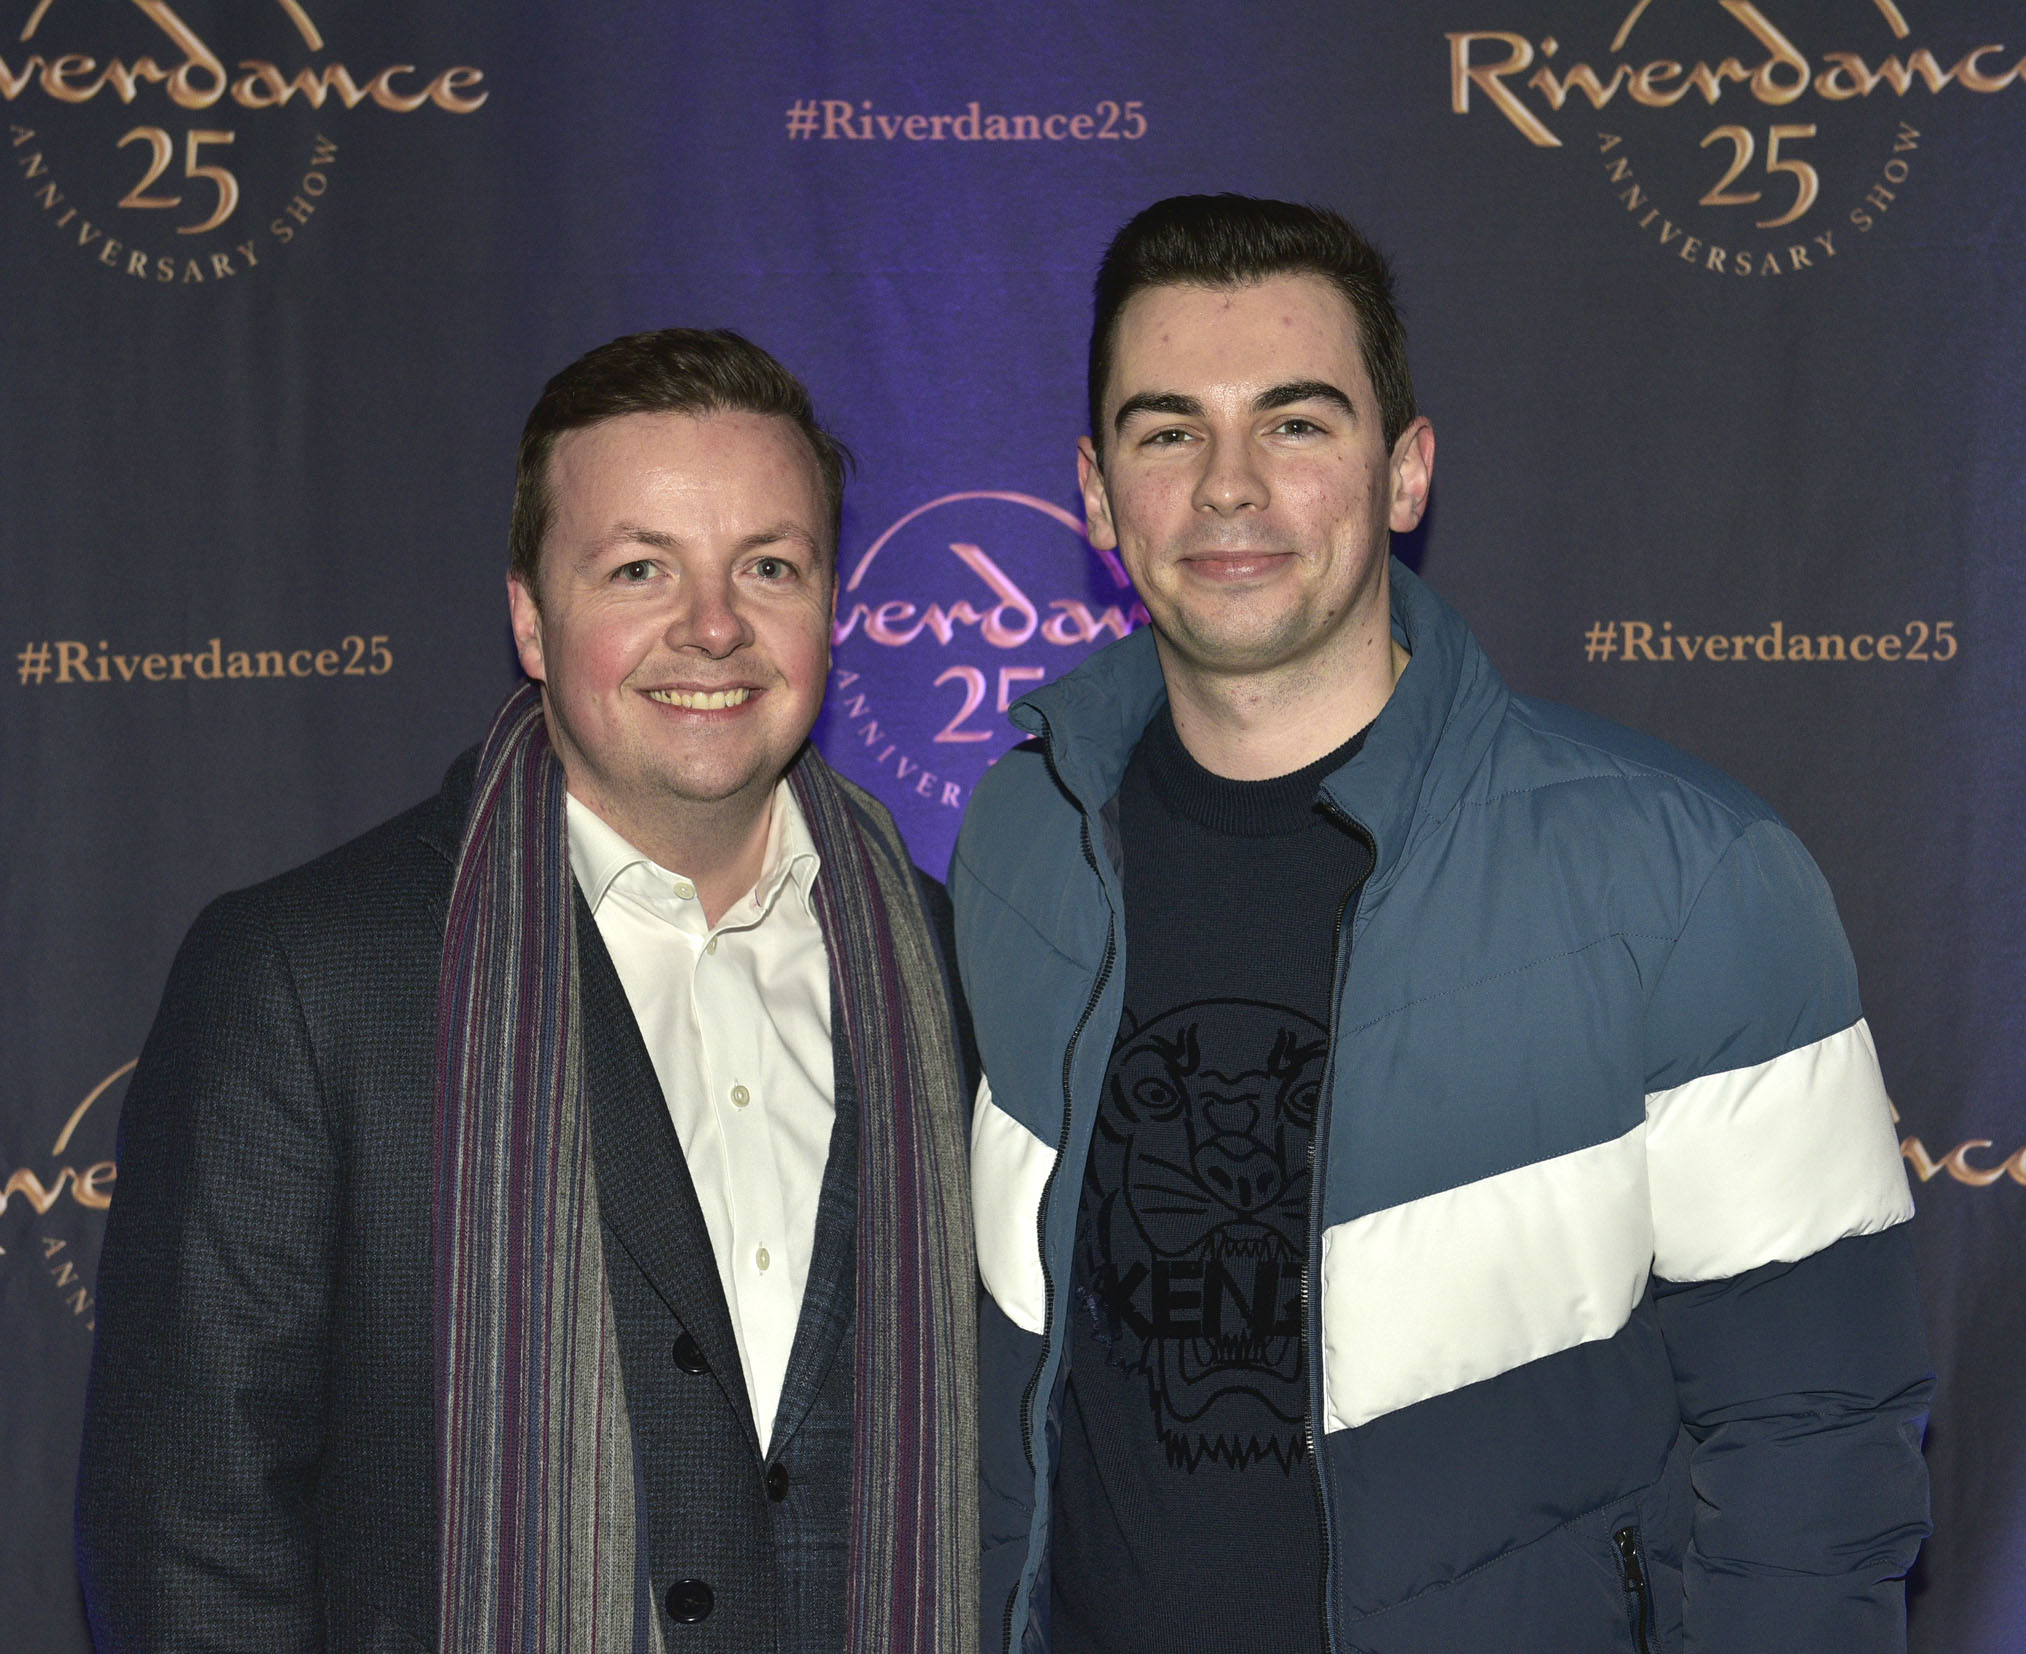 Oliver Callen & John Lannin at the historic gala performance of Riverdance 25th Anniversary show at 3Arena Dublin exactly 25 years to the day that Riverdance was first performed at the Point Depot.  Photo: Kieran Harnett